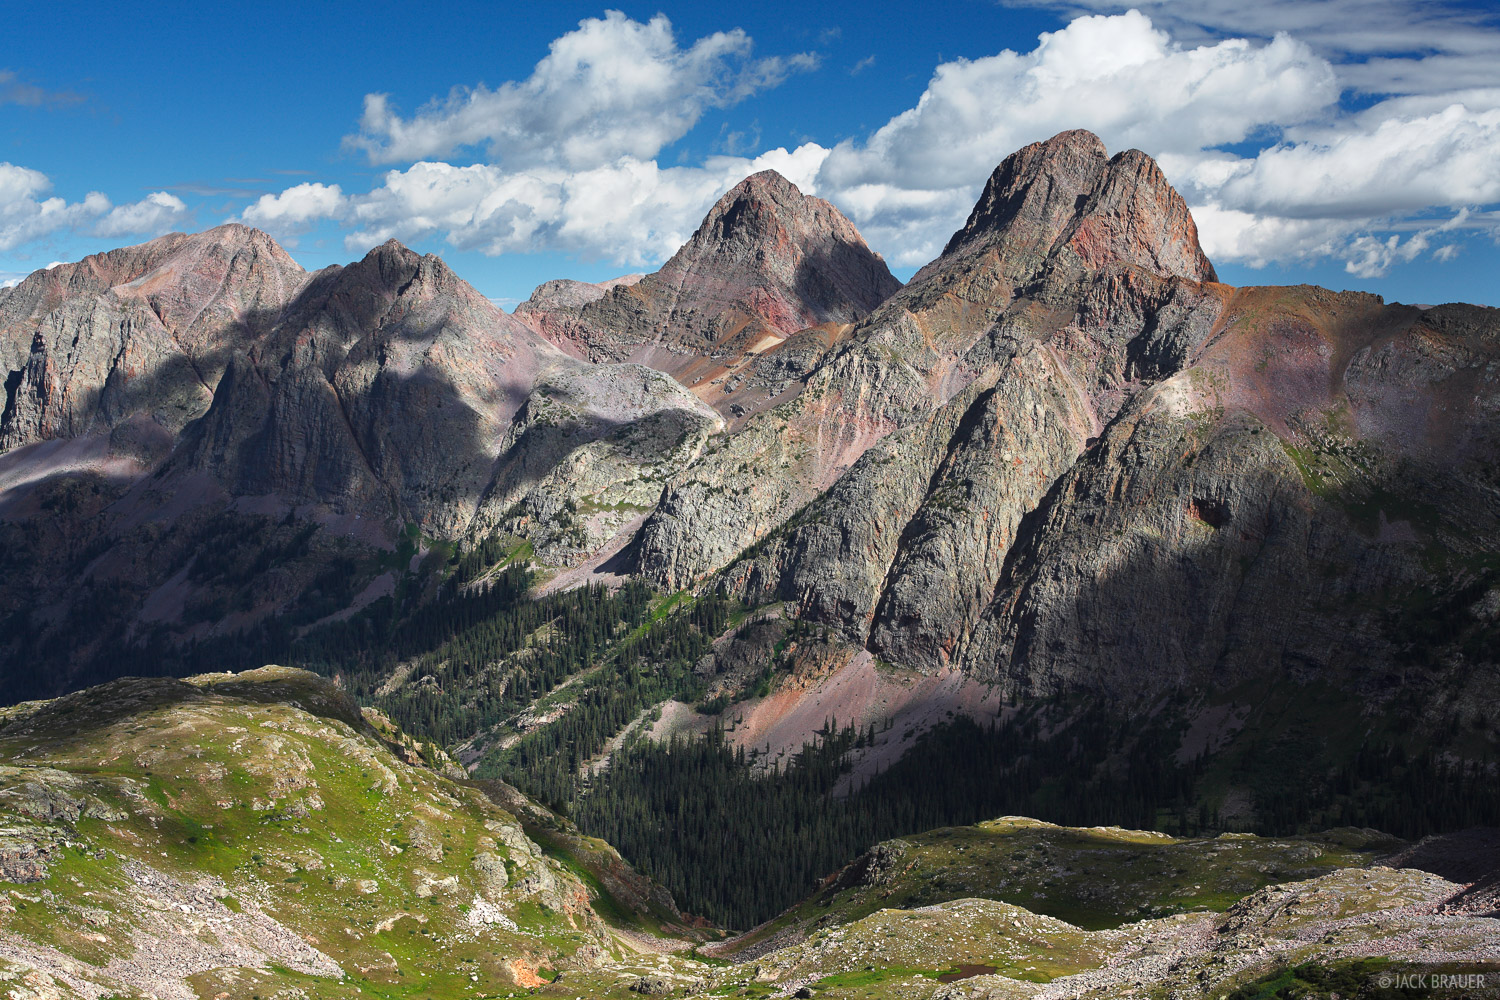 Grenadier Range, San Juan Mountains, Colorado, Arrow Peak, Vestal Peak, photo